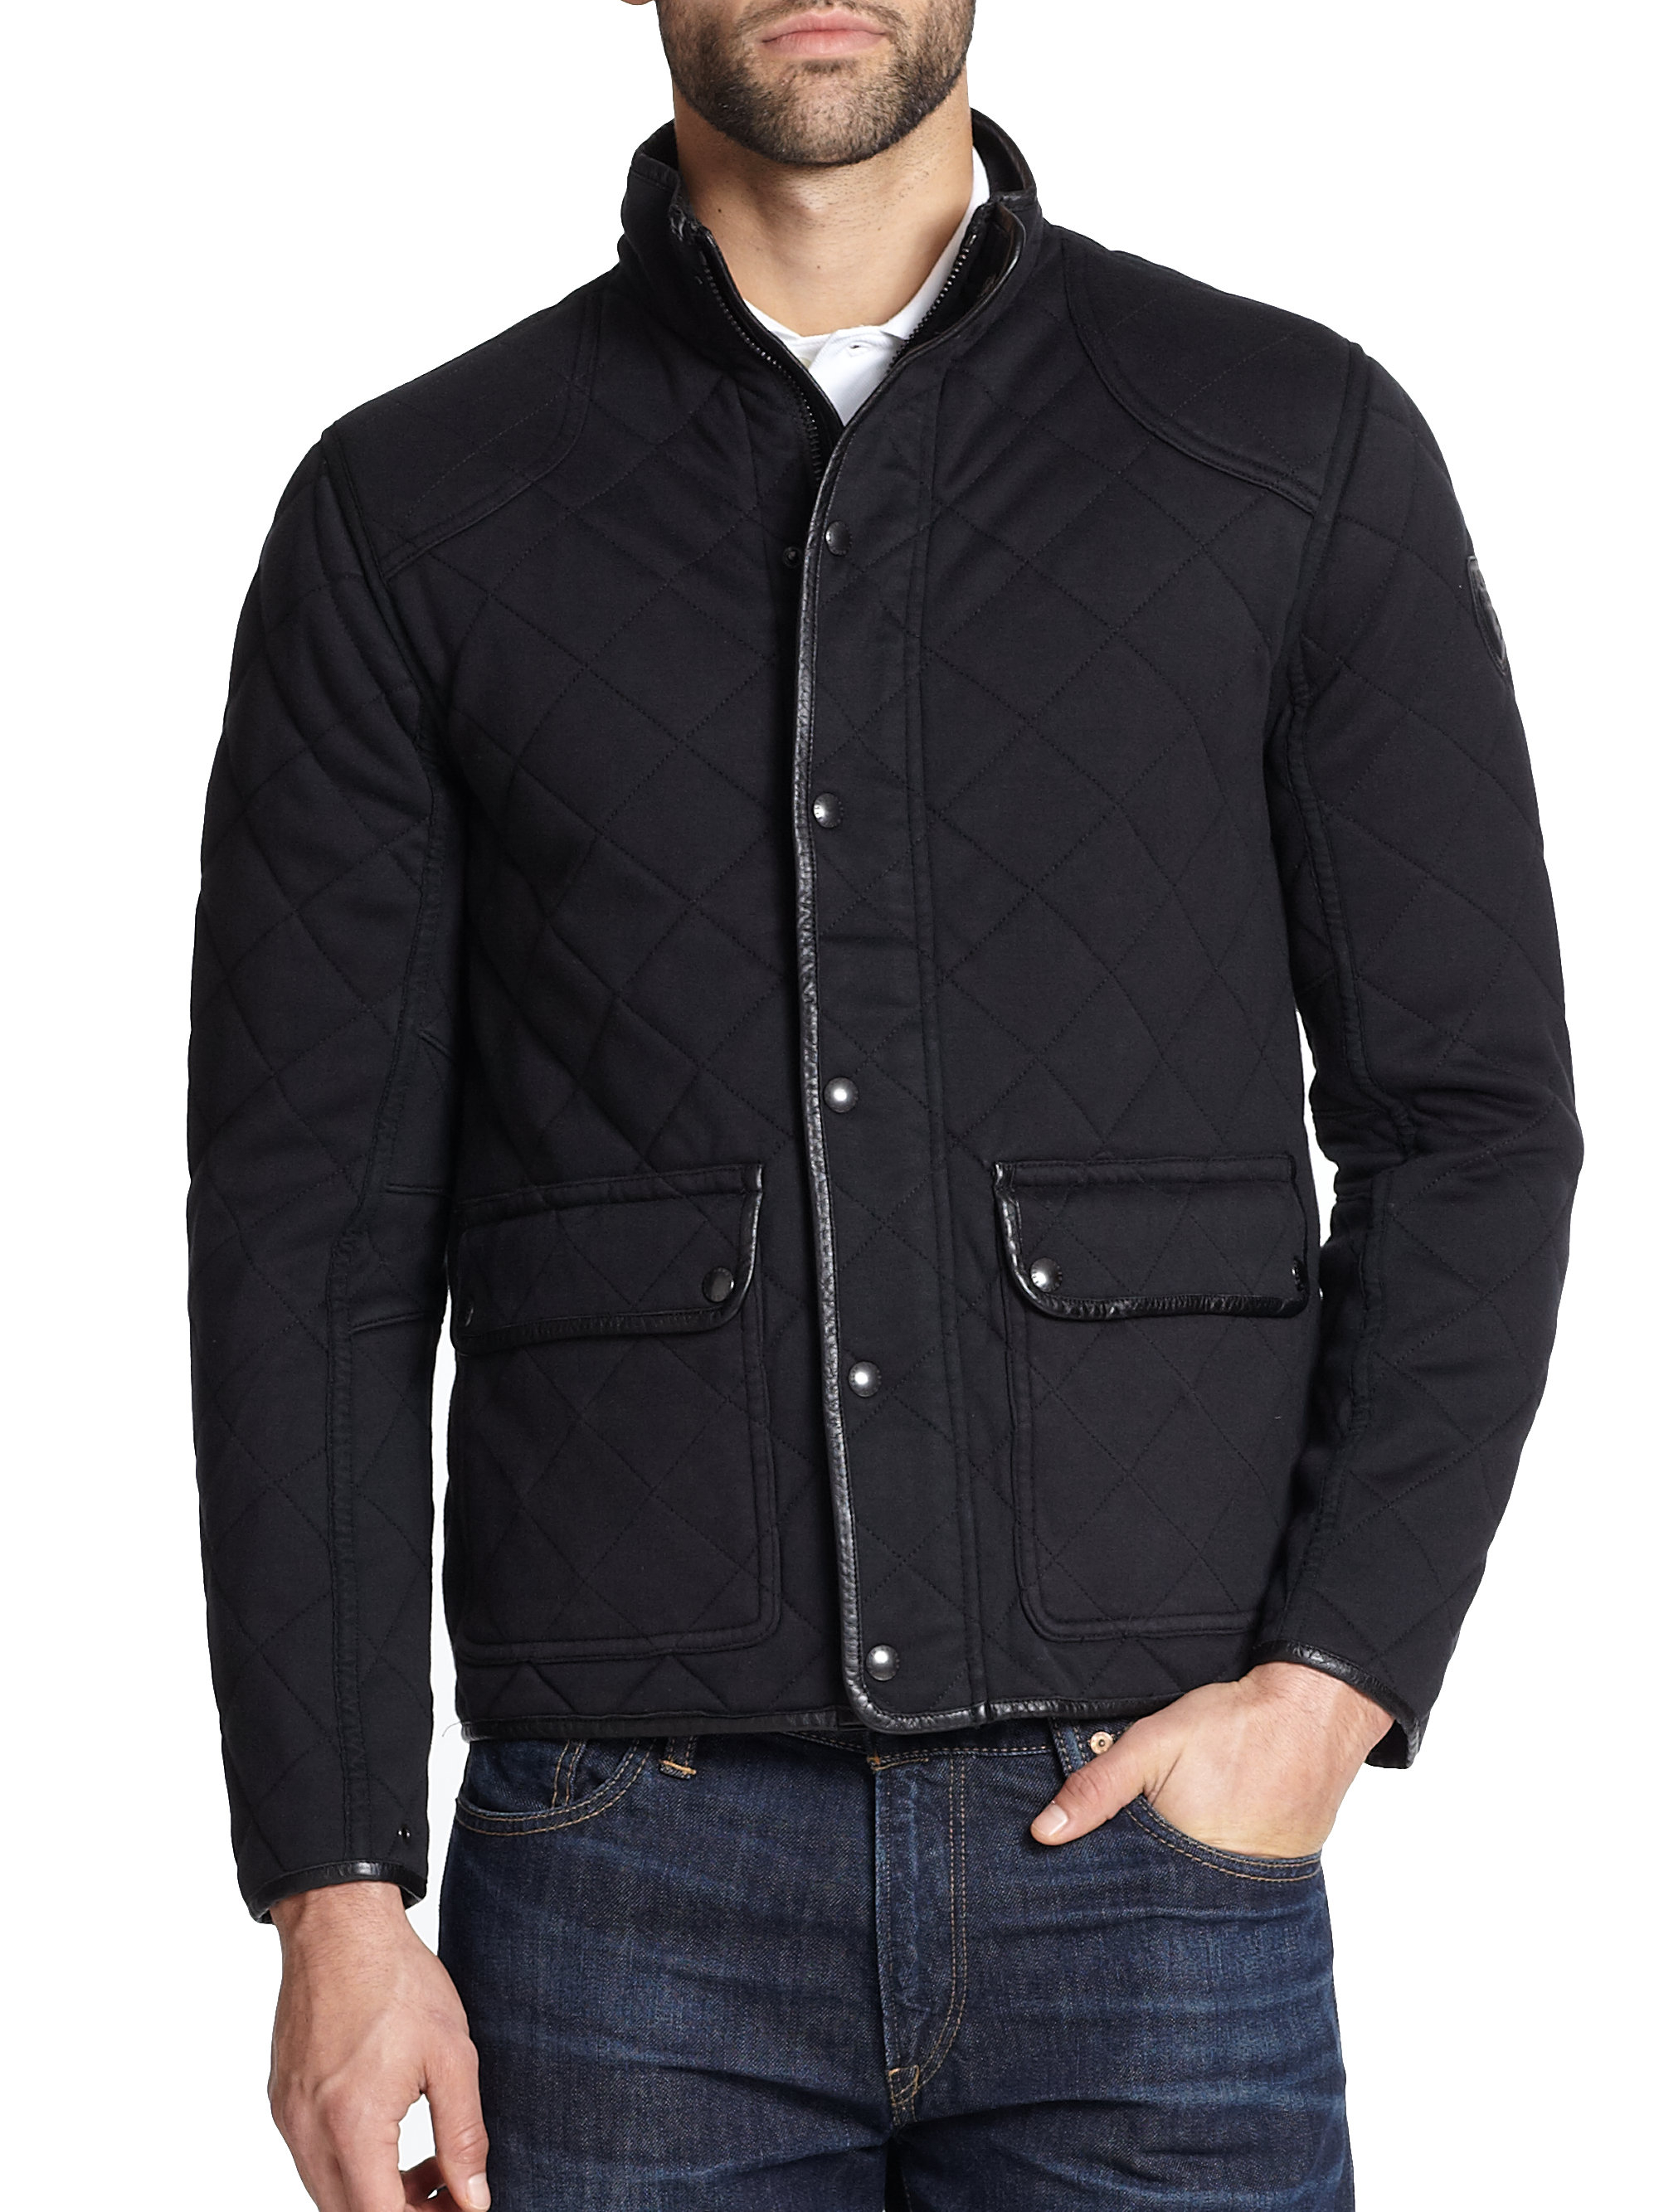 Mens jacket cotton - Polo Ralph Lauren Quilted Pima Cotton Jacket In Black For Men Lyst